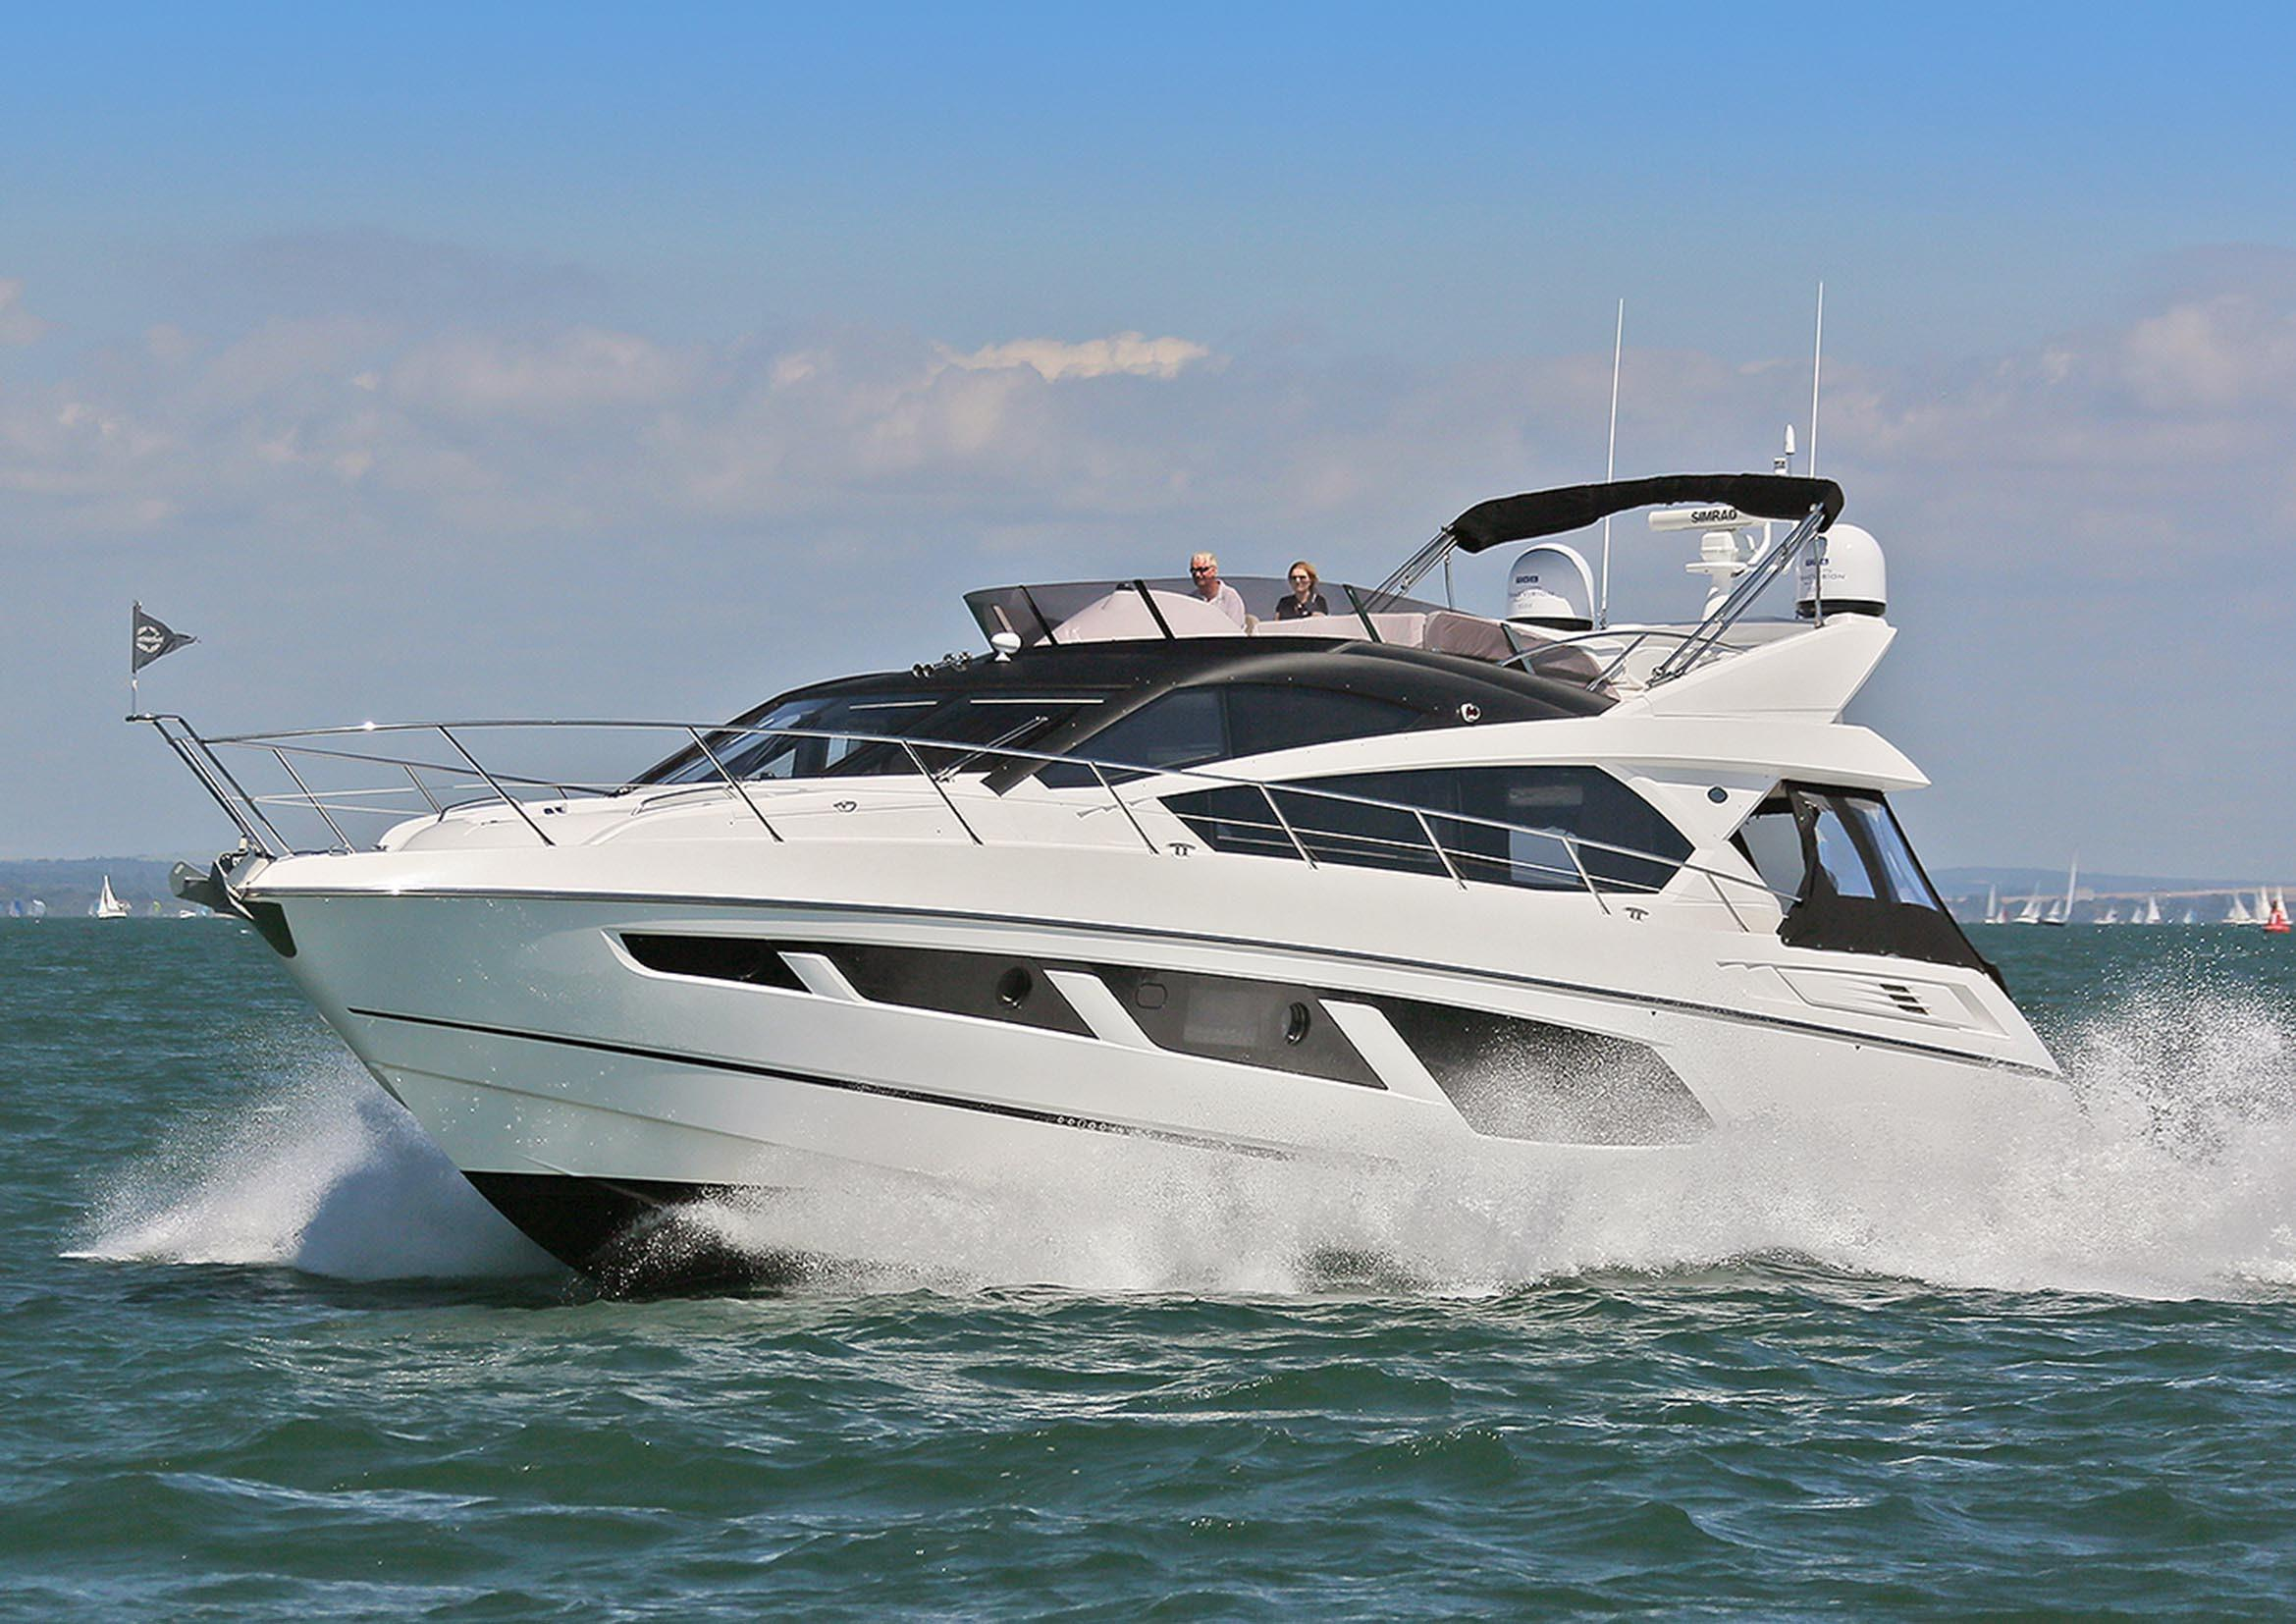 Station 66 Mediterrane Küche 2015 Sunseeker Manhattan 65 Lymington United Kingdom Boats